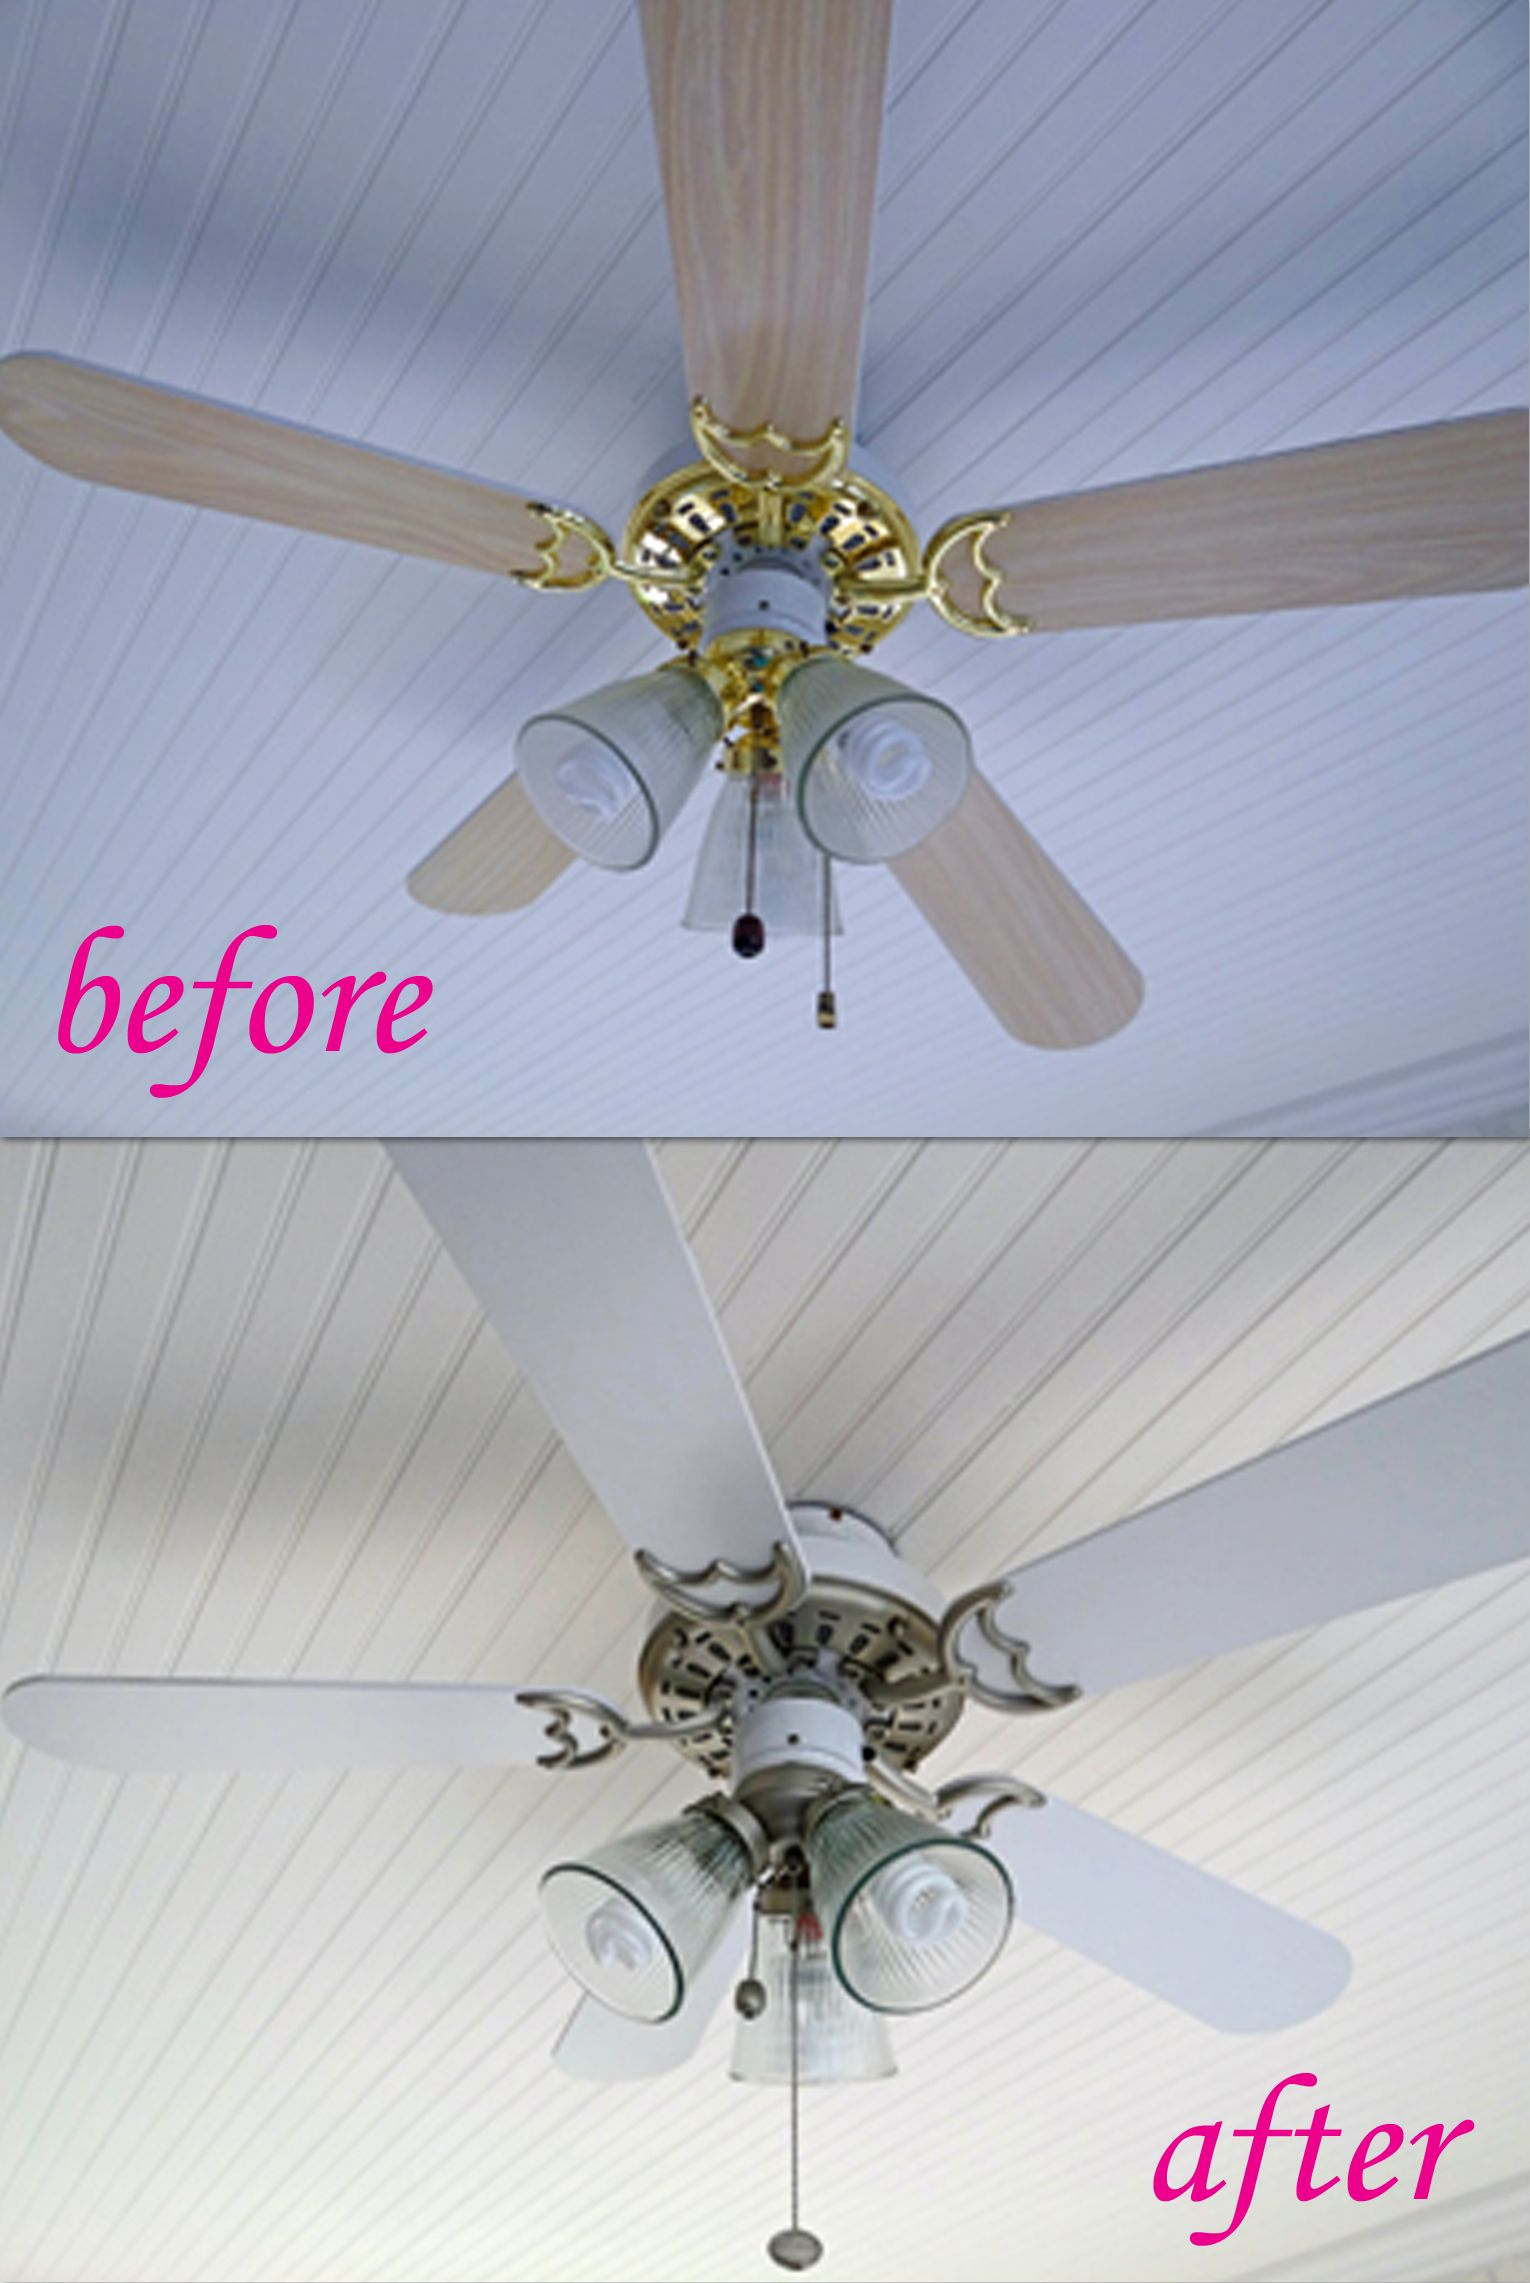 Before after how to spray paint a ceiling fan for only 7 before after how to spray paint a ceiling fan for only 7 aloadofball Images